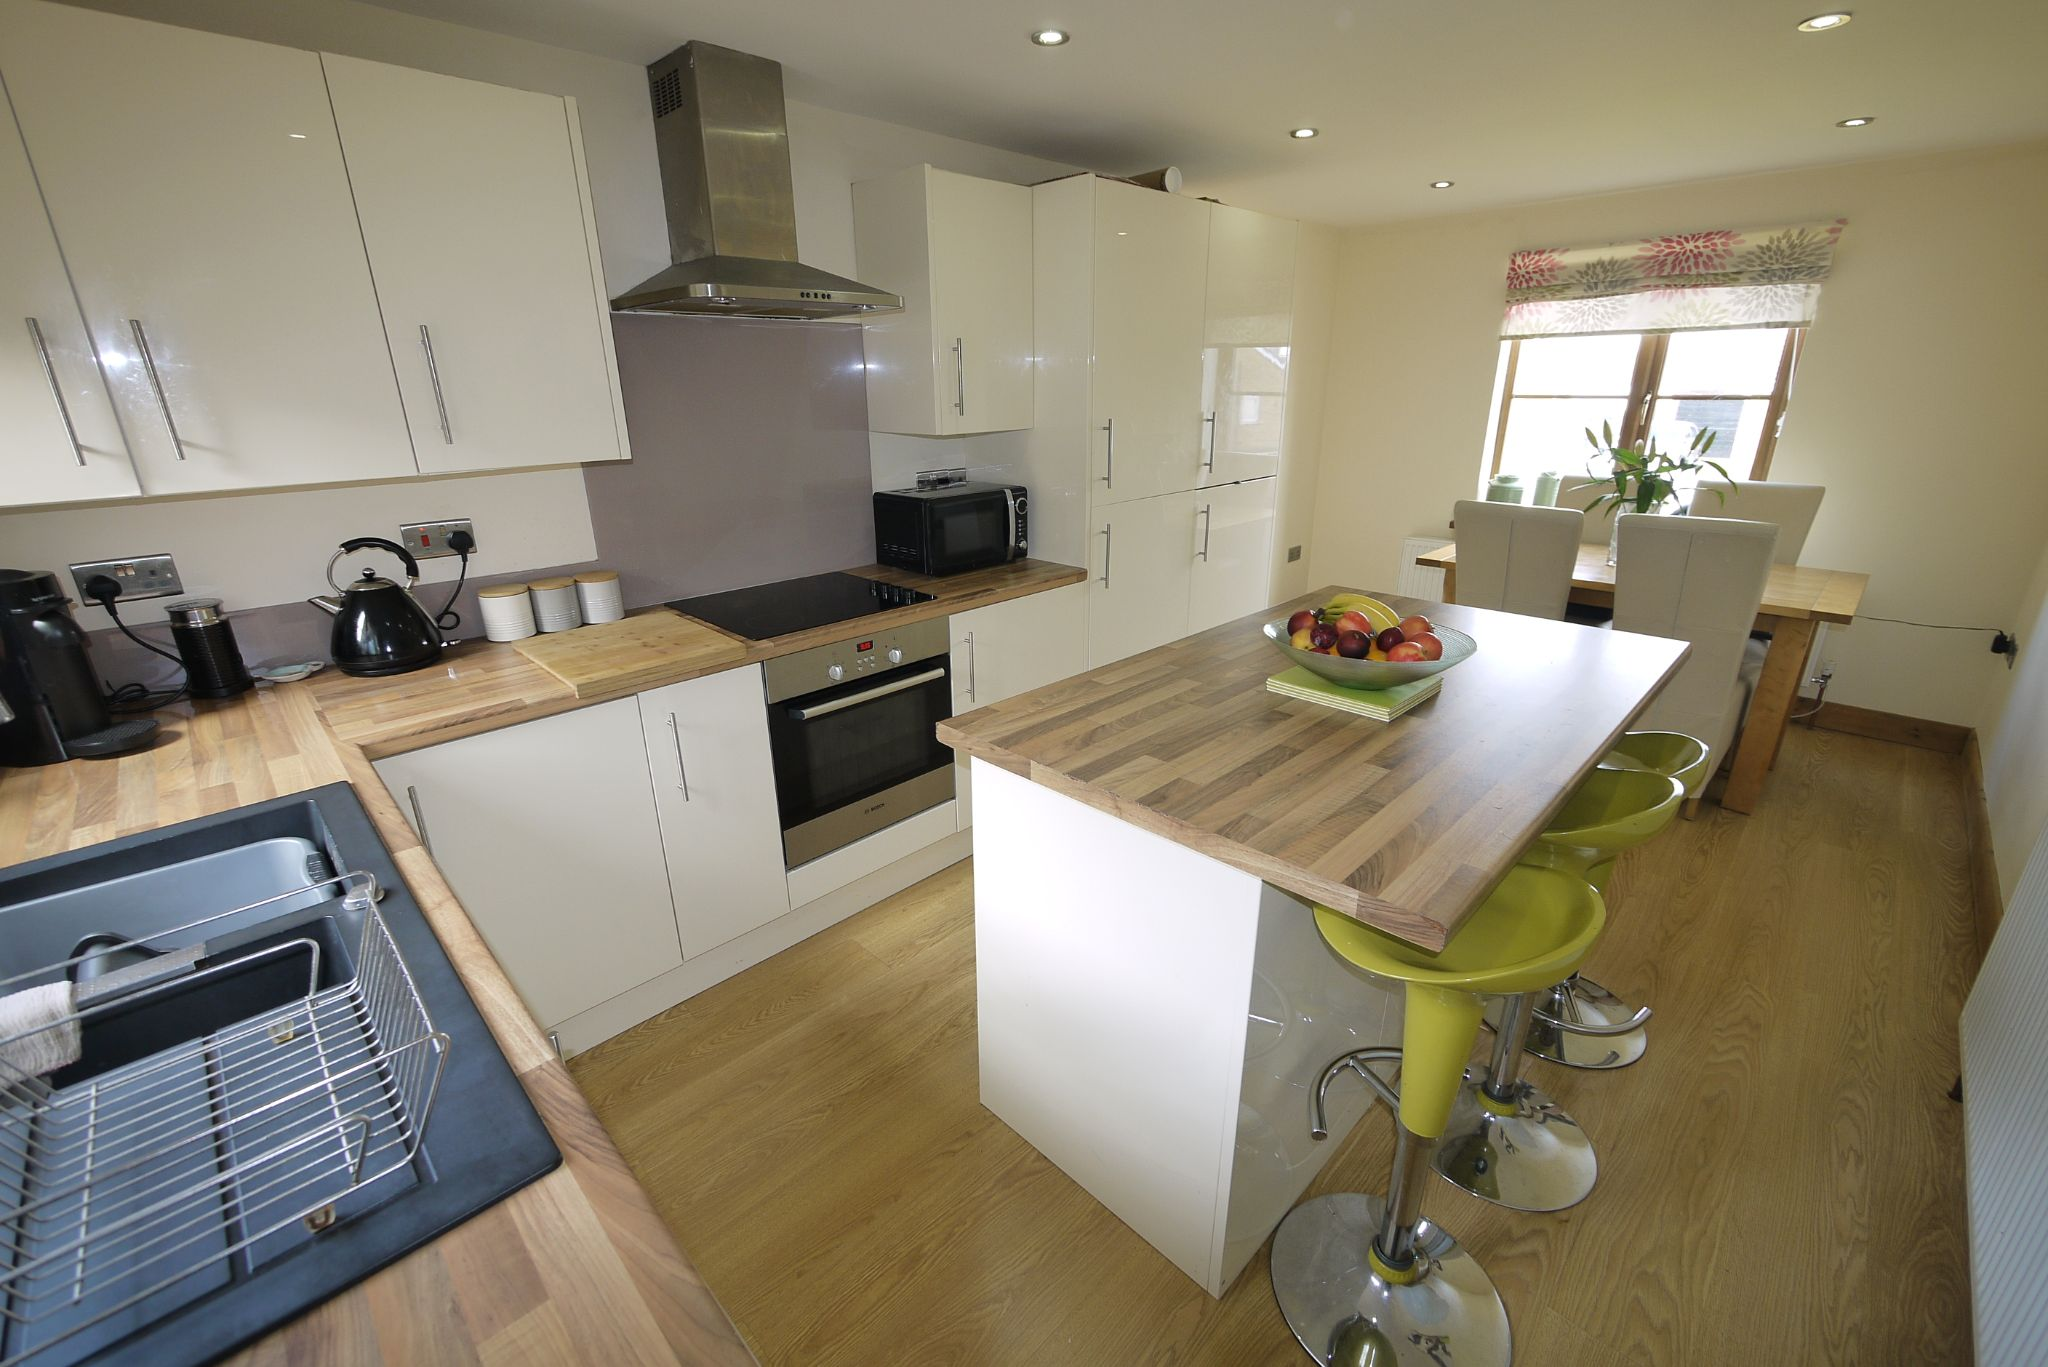 4 bedroom detached house SSTC in Brighouse - Dining Kit.